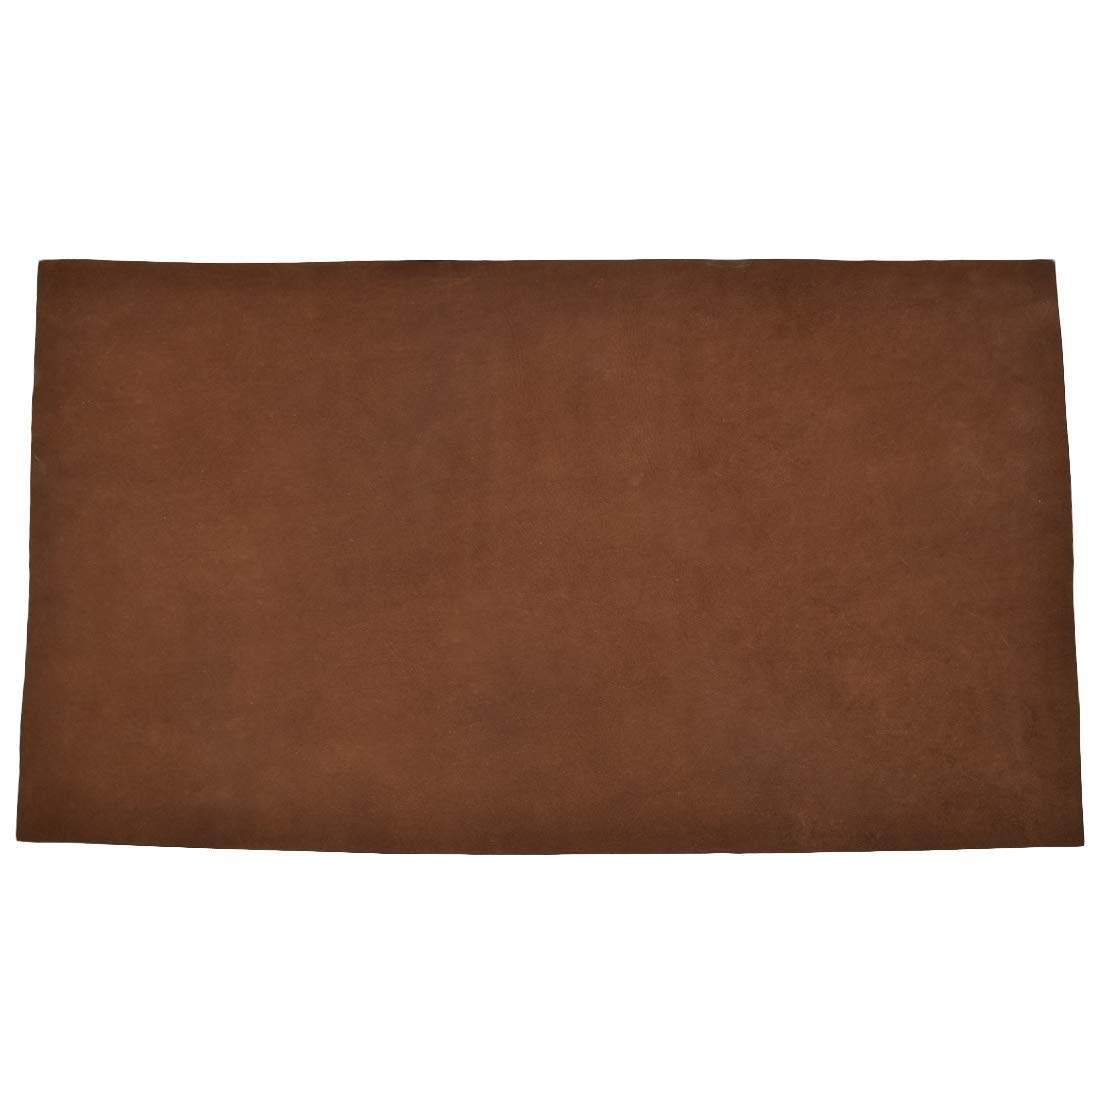 Leather Square (12 x 24 in.) for Crafts/Tooling/Hobby Workshop, Medium Weight (1.8mm) by Hide & Drink :: Swayze Suede